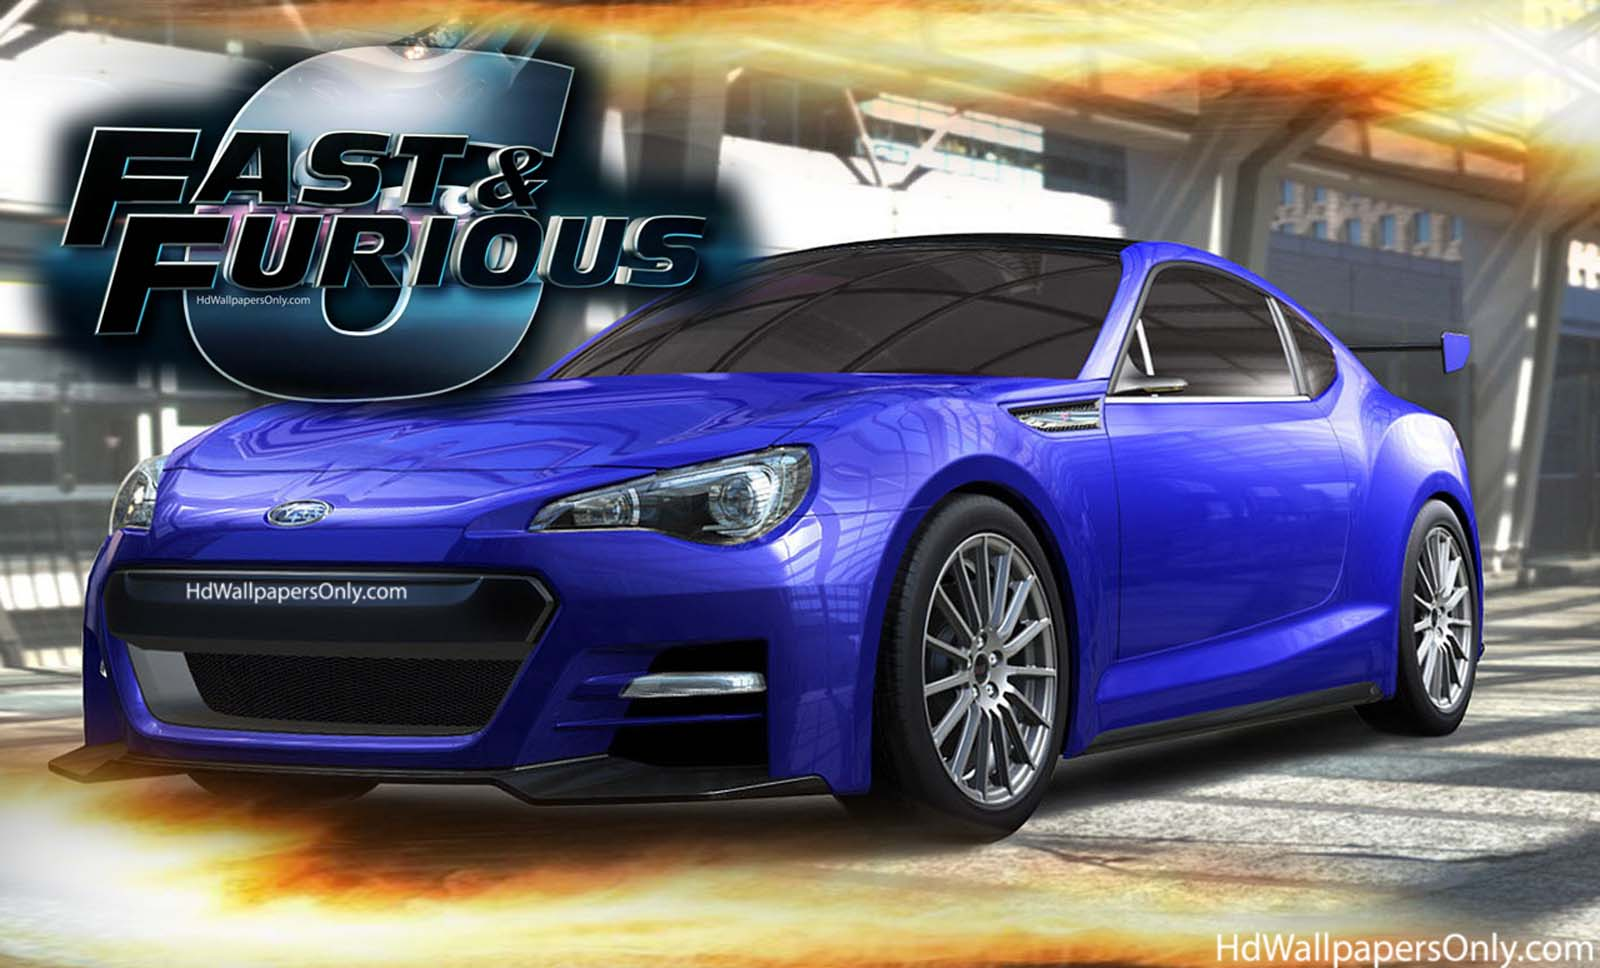 Fast And Furious Cars Wallpapers Wallpaper Cave